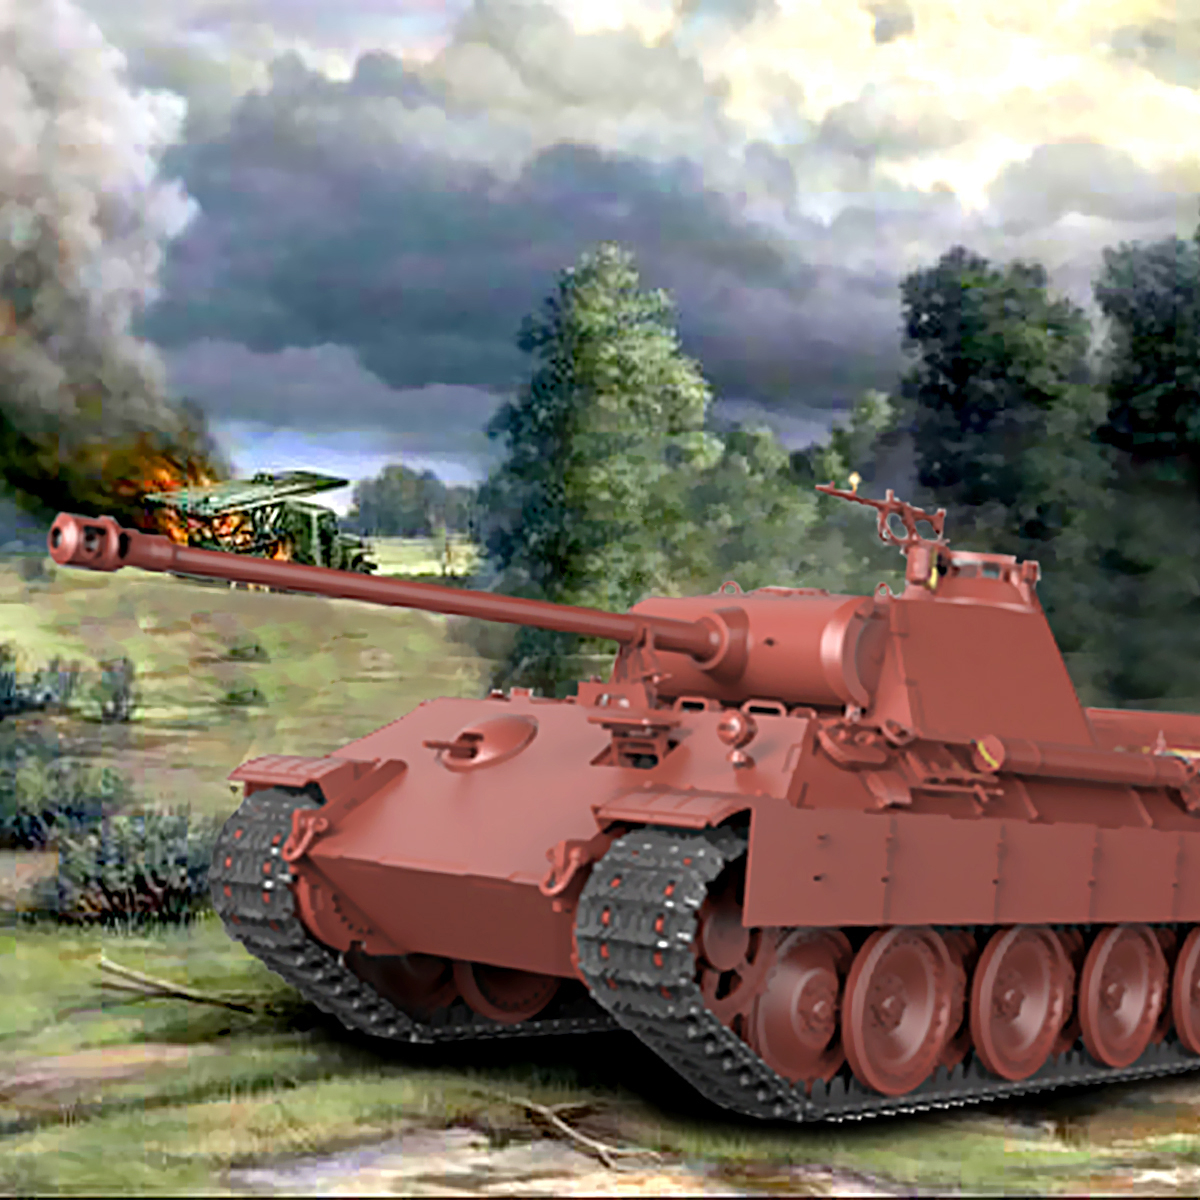 Tank Model Building Kits DIY Toy Kit For Meng TS-035 Sd.Kfz.171 Panther Ausf.A Late WWII Military Creation 1:35 Great Fun